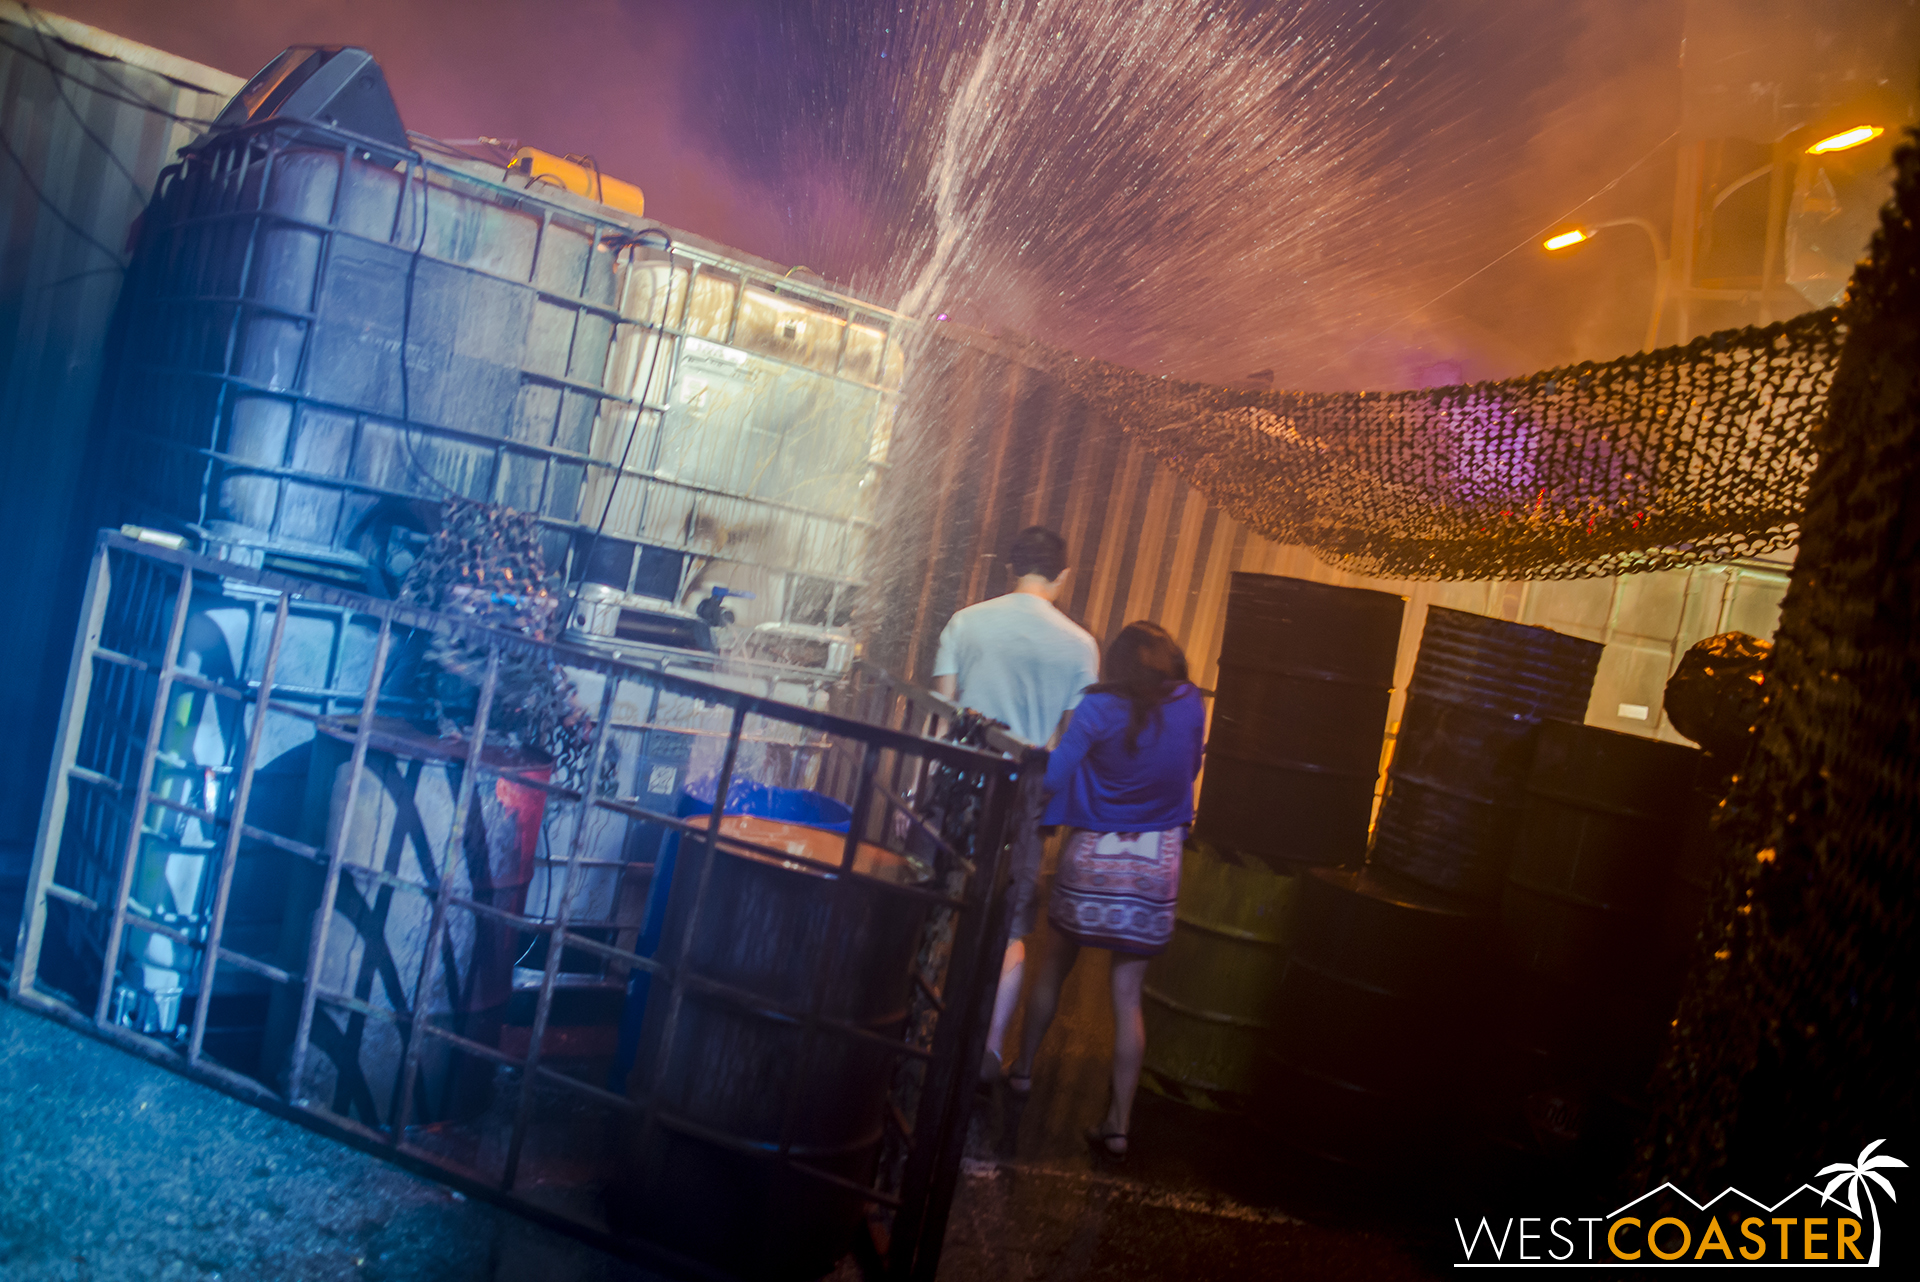 In fact, it's as though they took all the potential HHN moments and combined them into one massive water-splosion. Hit this part at the wrong time, and you WILL get drenched!